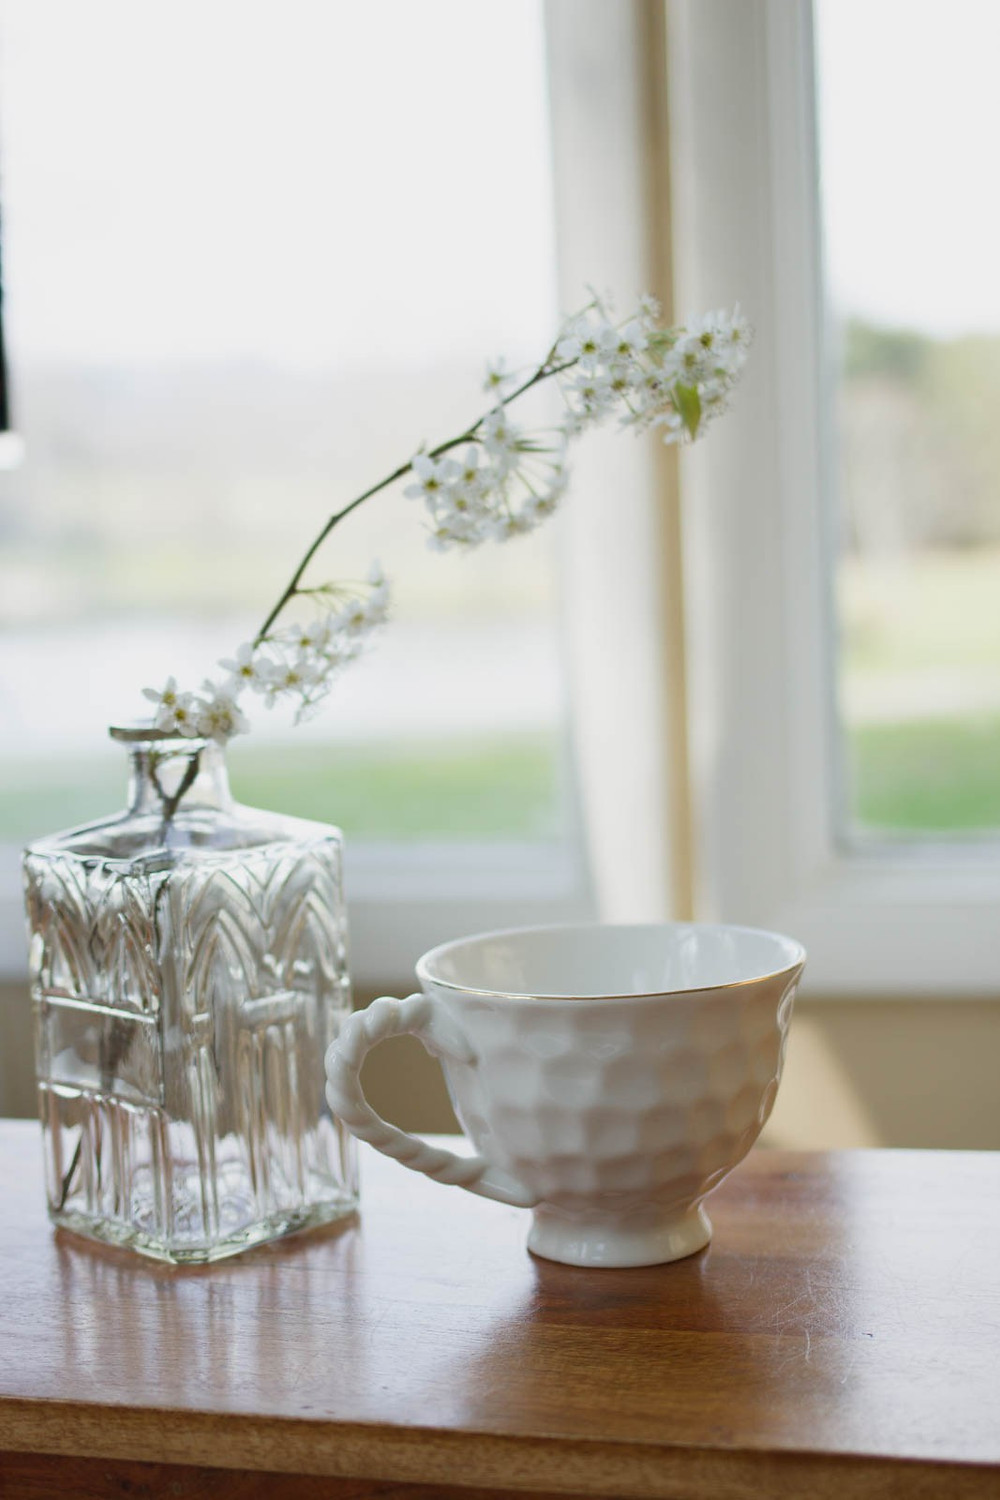 Peaceful photo of cup and plant stem in vase